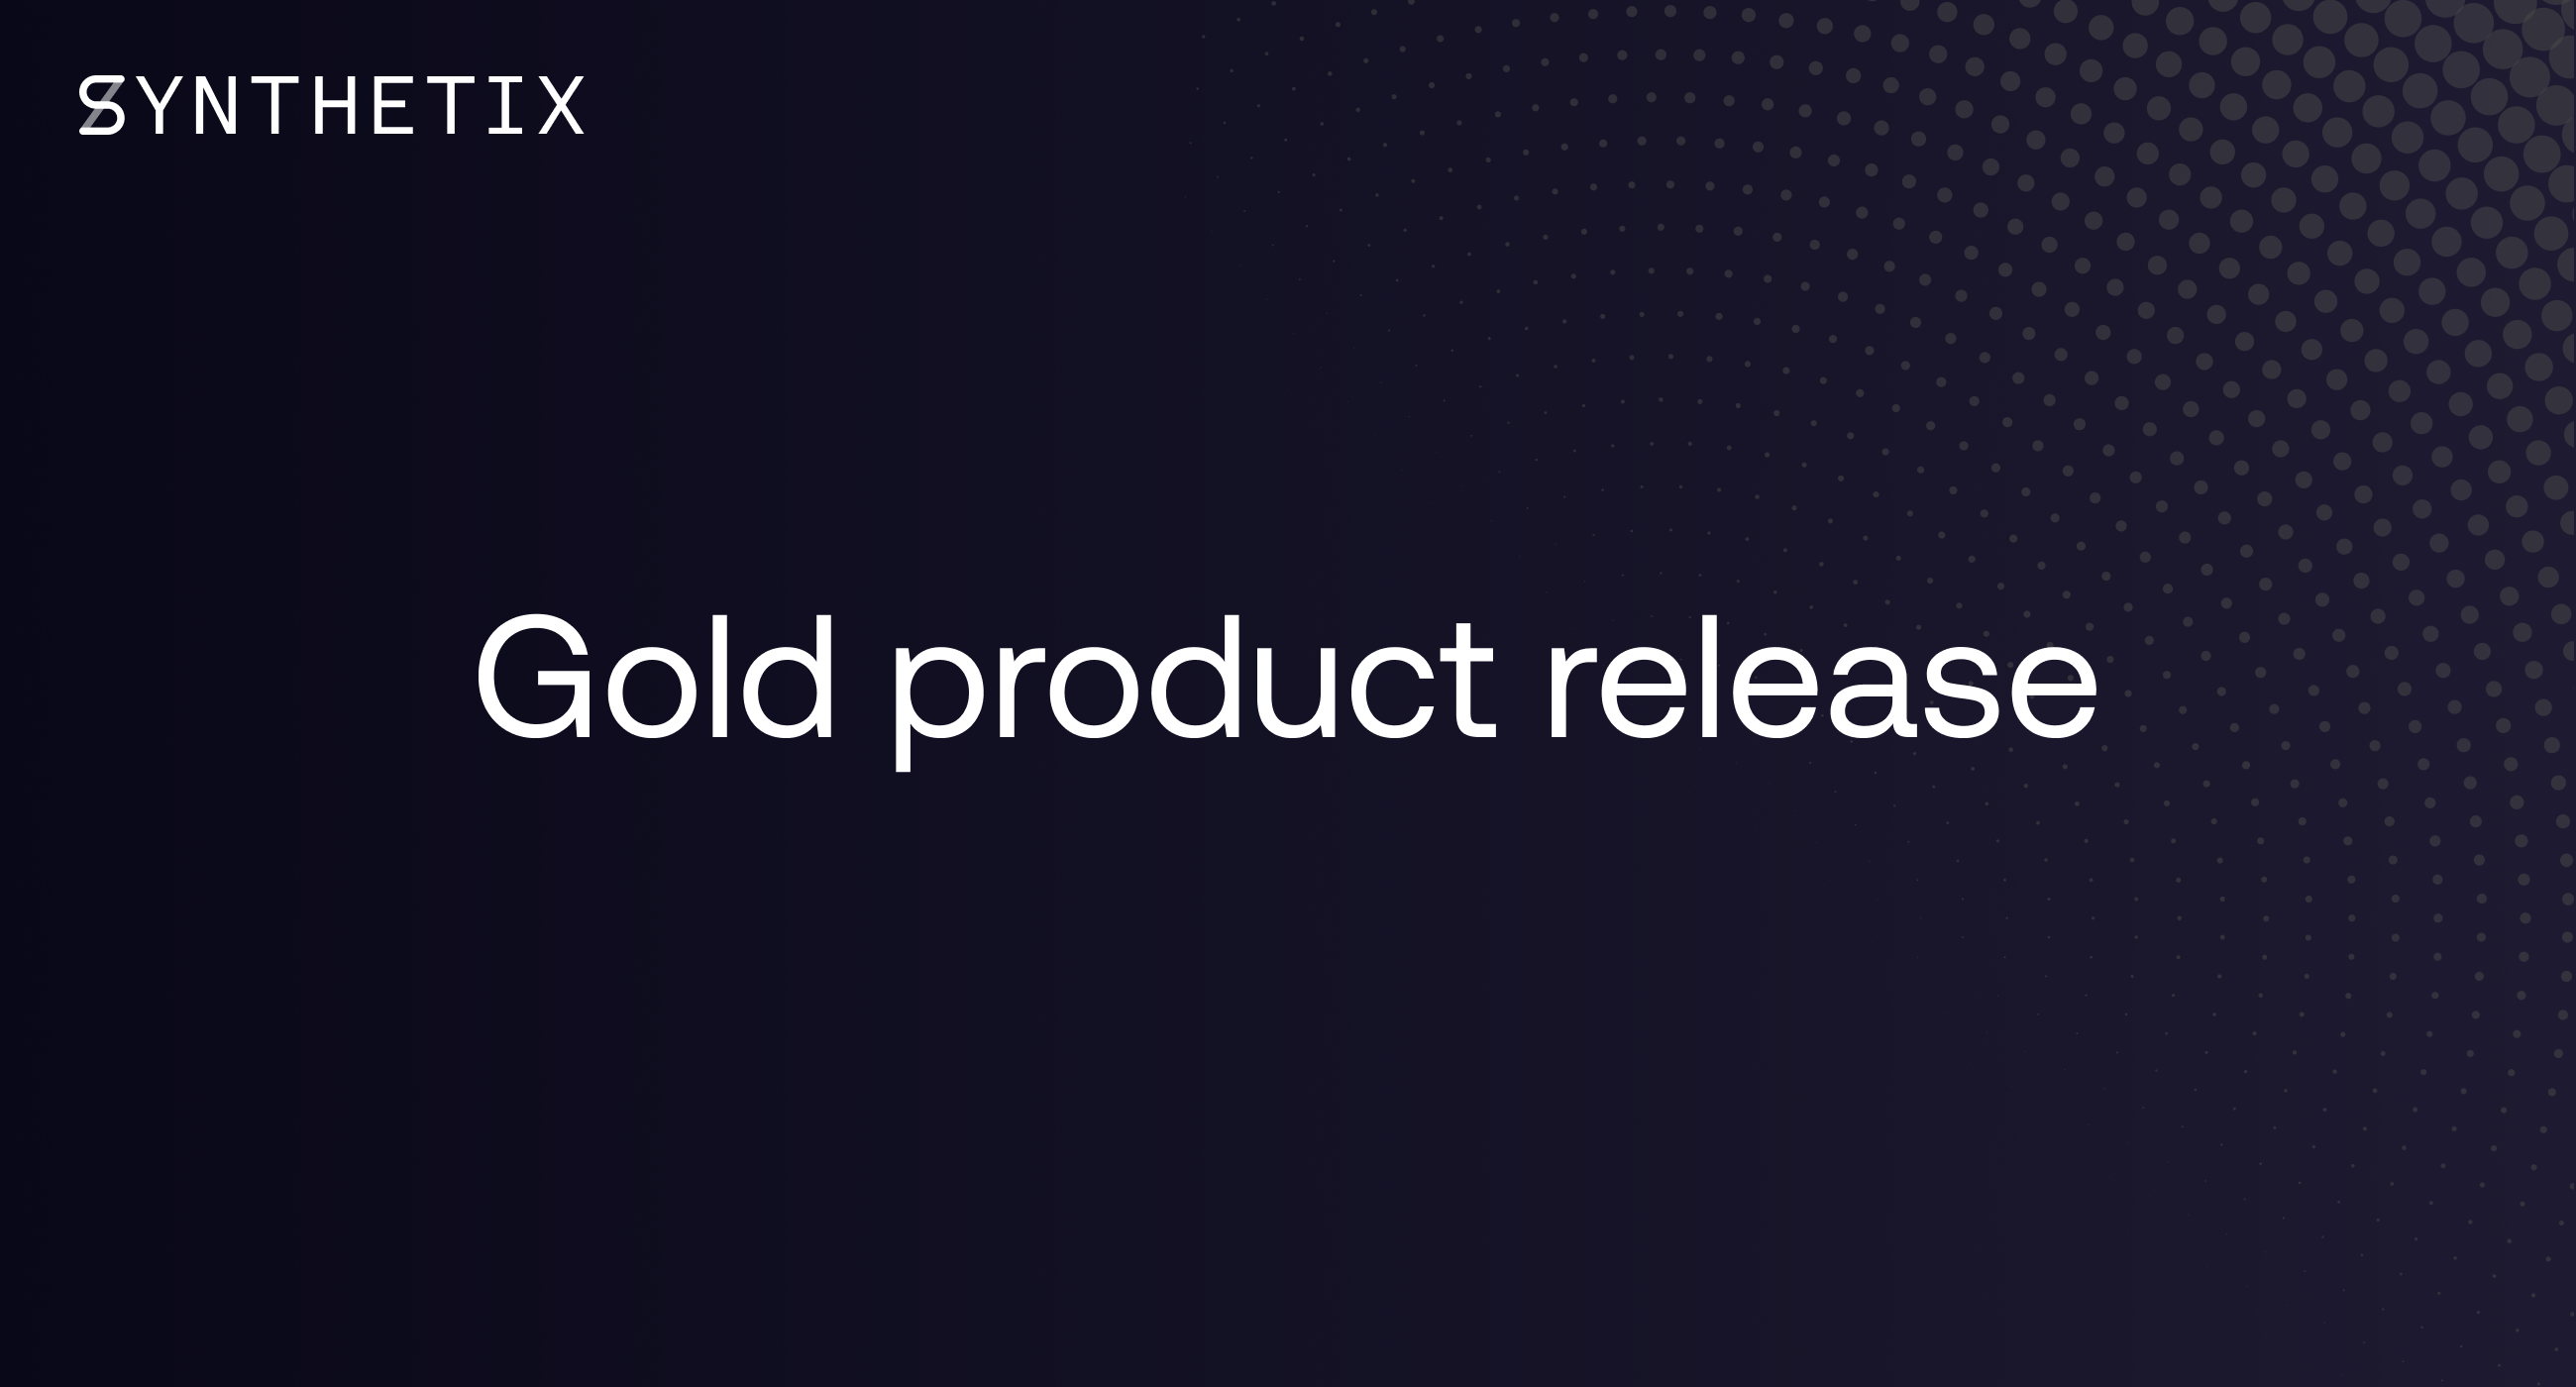 Gold product release